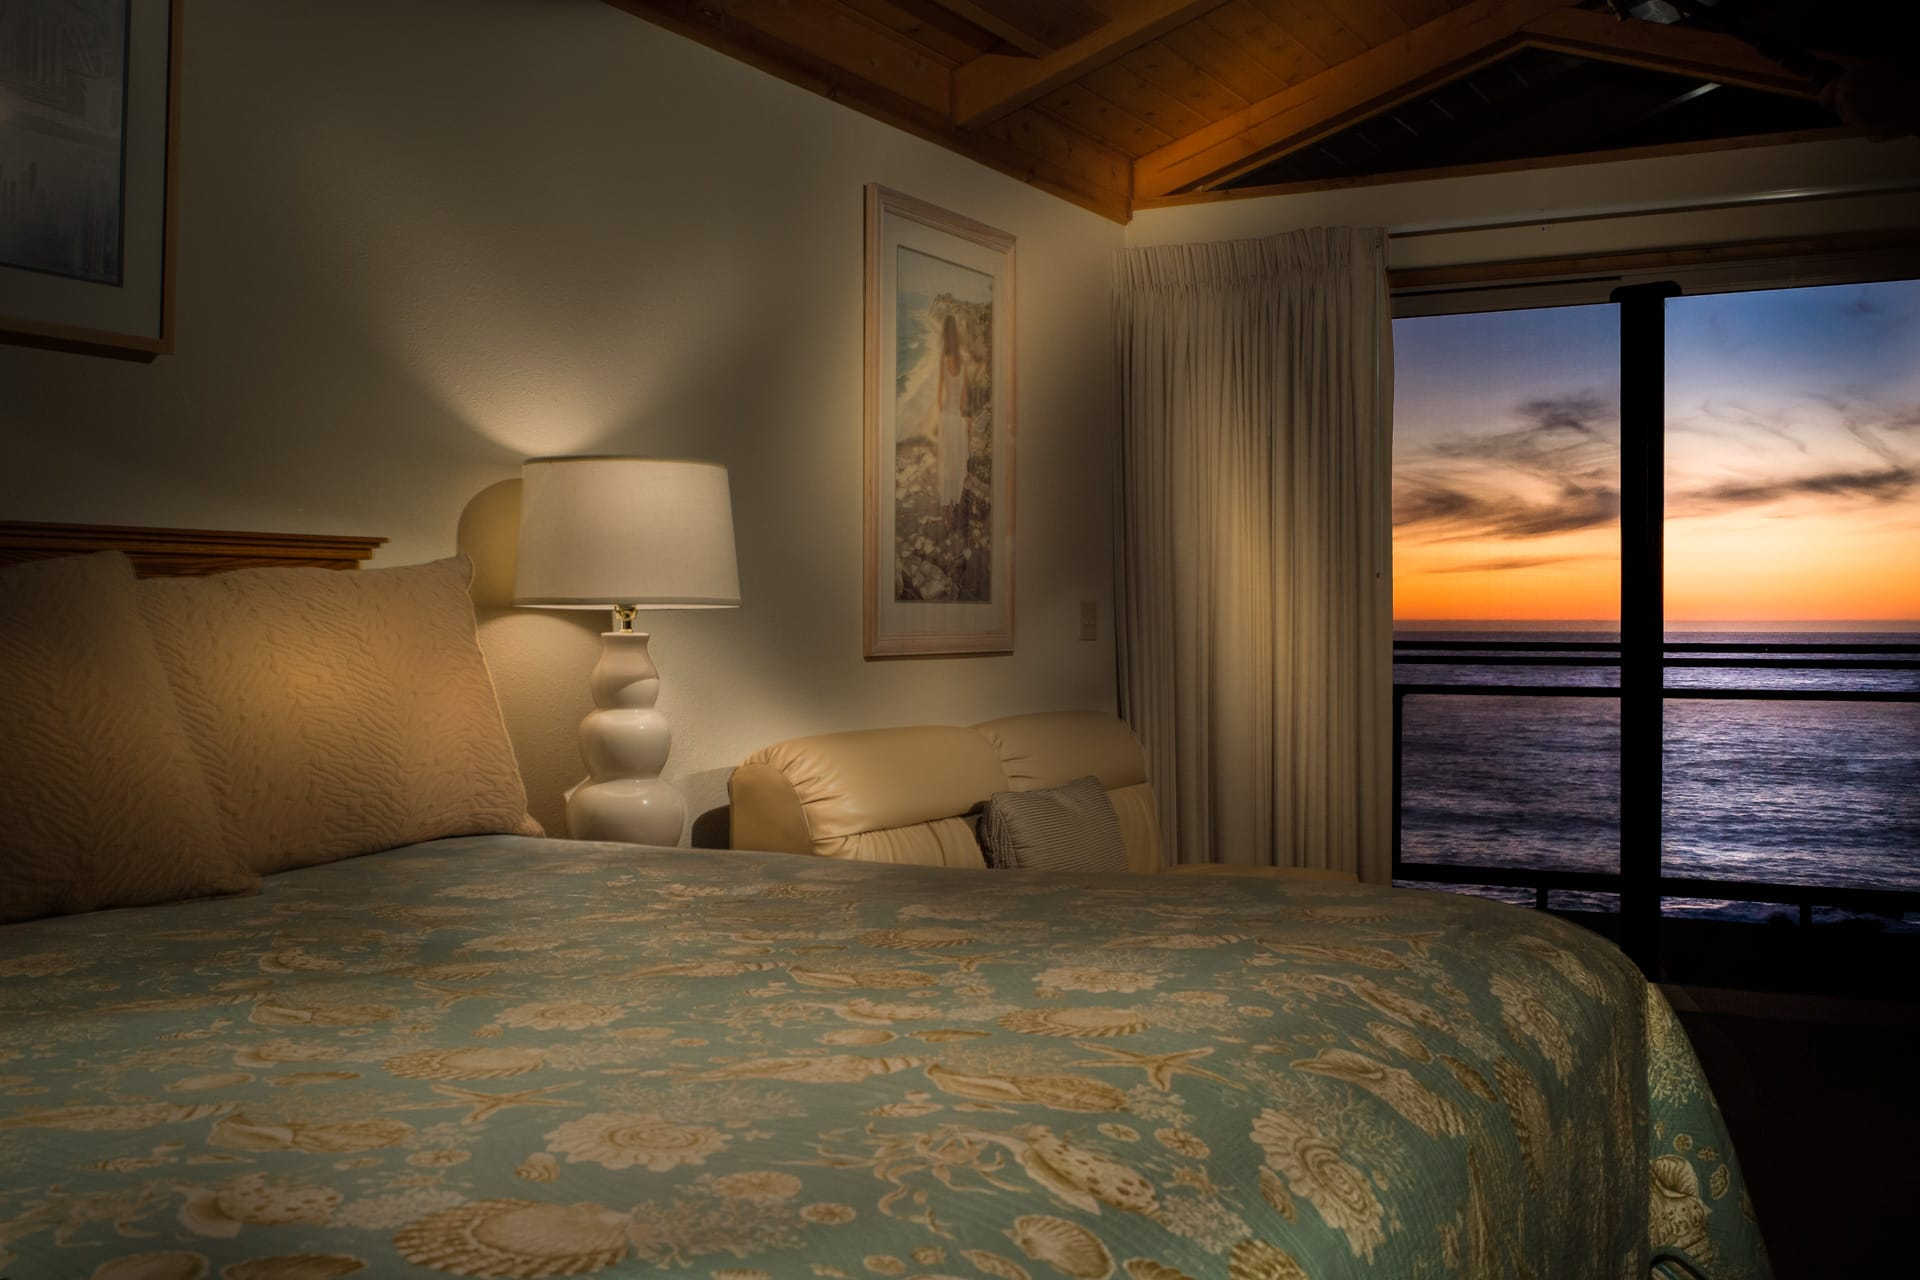 Sunset at Inn of the Lost Coast Shelter Cove from King size bed in this Deluxe Spa Suite hotel room.